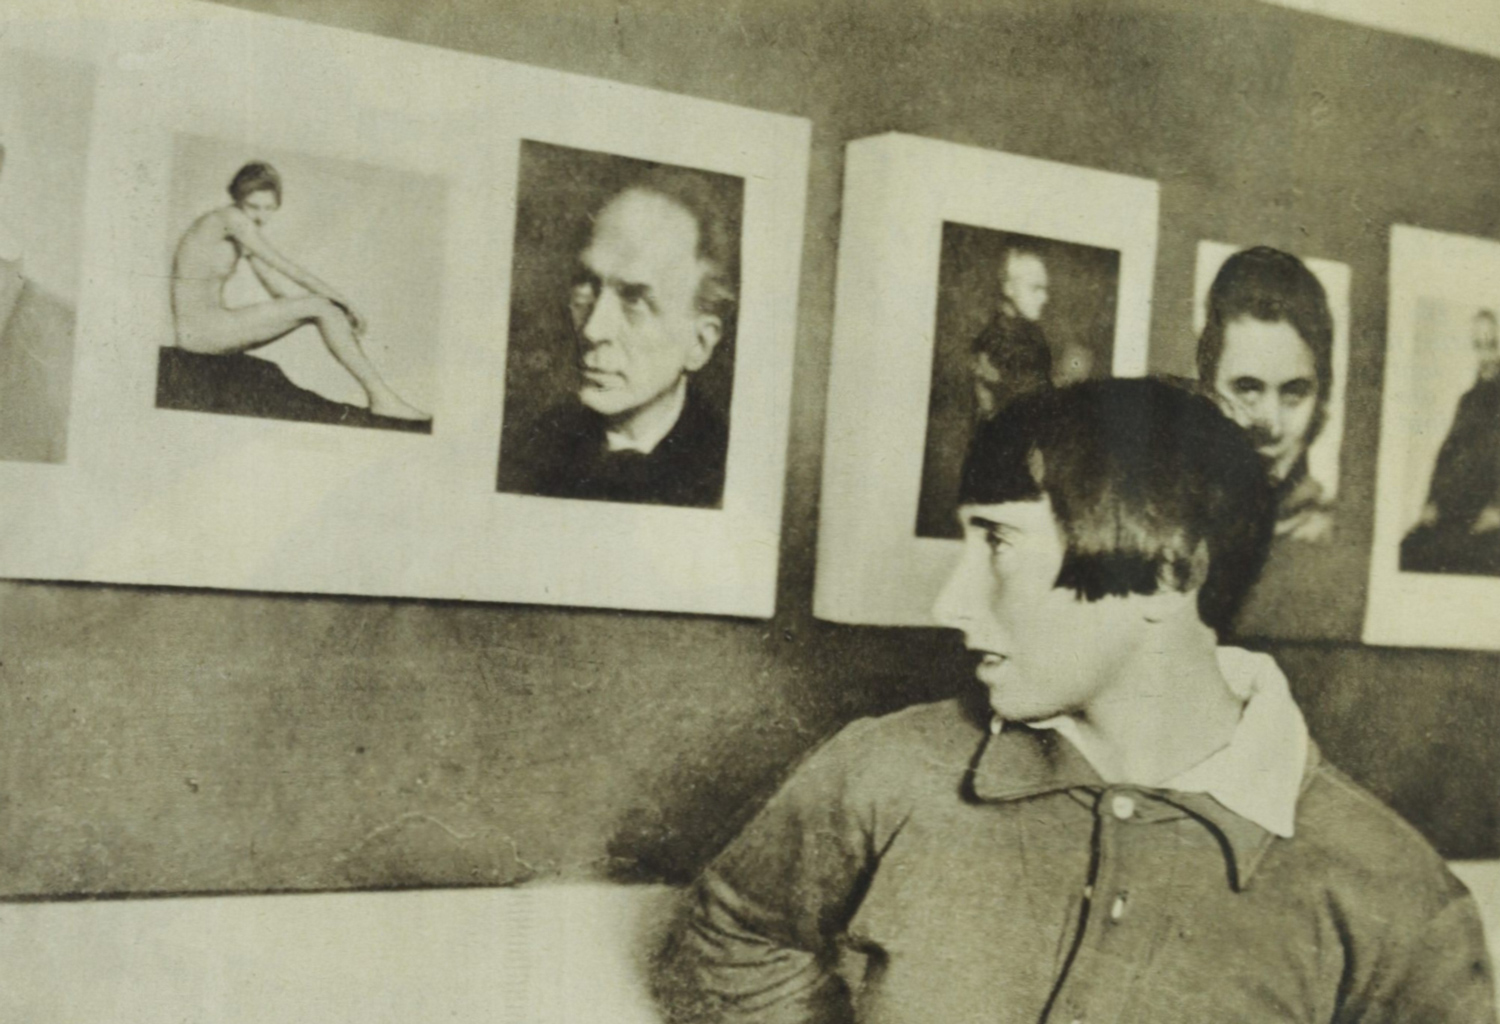 Image: Trude Fleischmann with her work. Image courtesy of Wikimedia